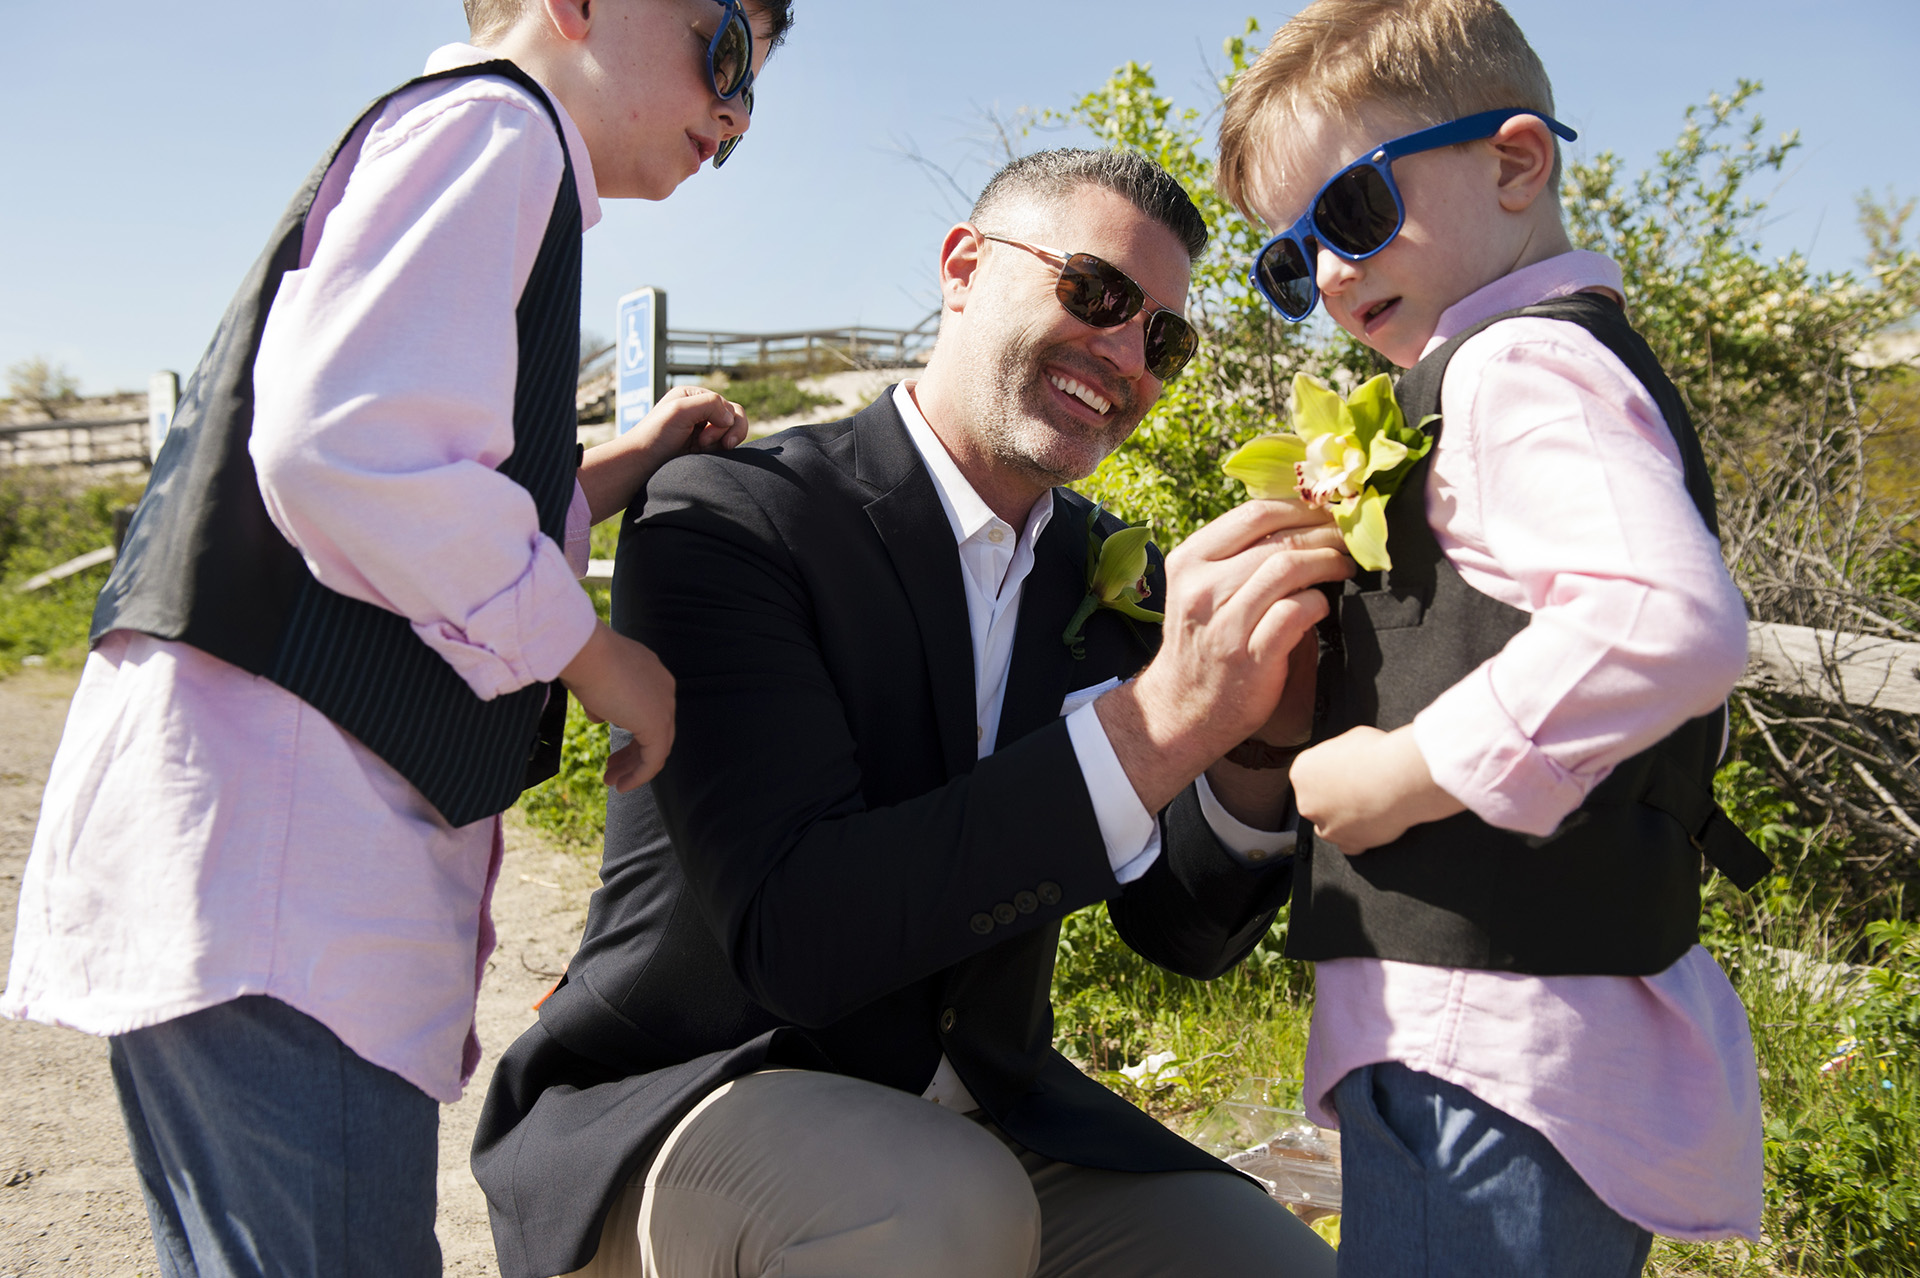 Ipswich, Massachusetts Elopement Photos   The groom pinning boutonnieres on the bride's children in the parking lot